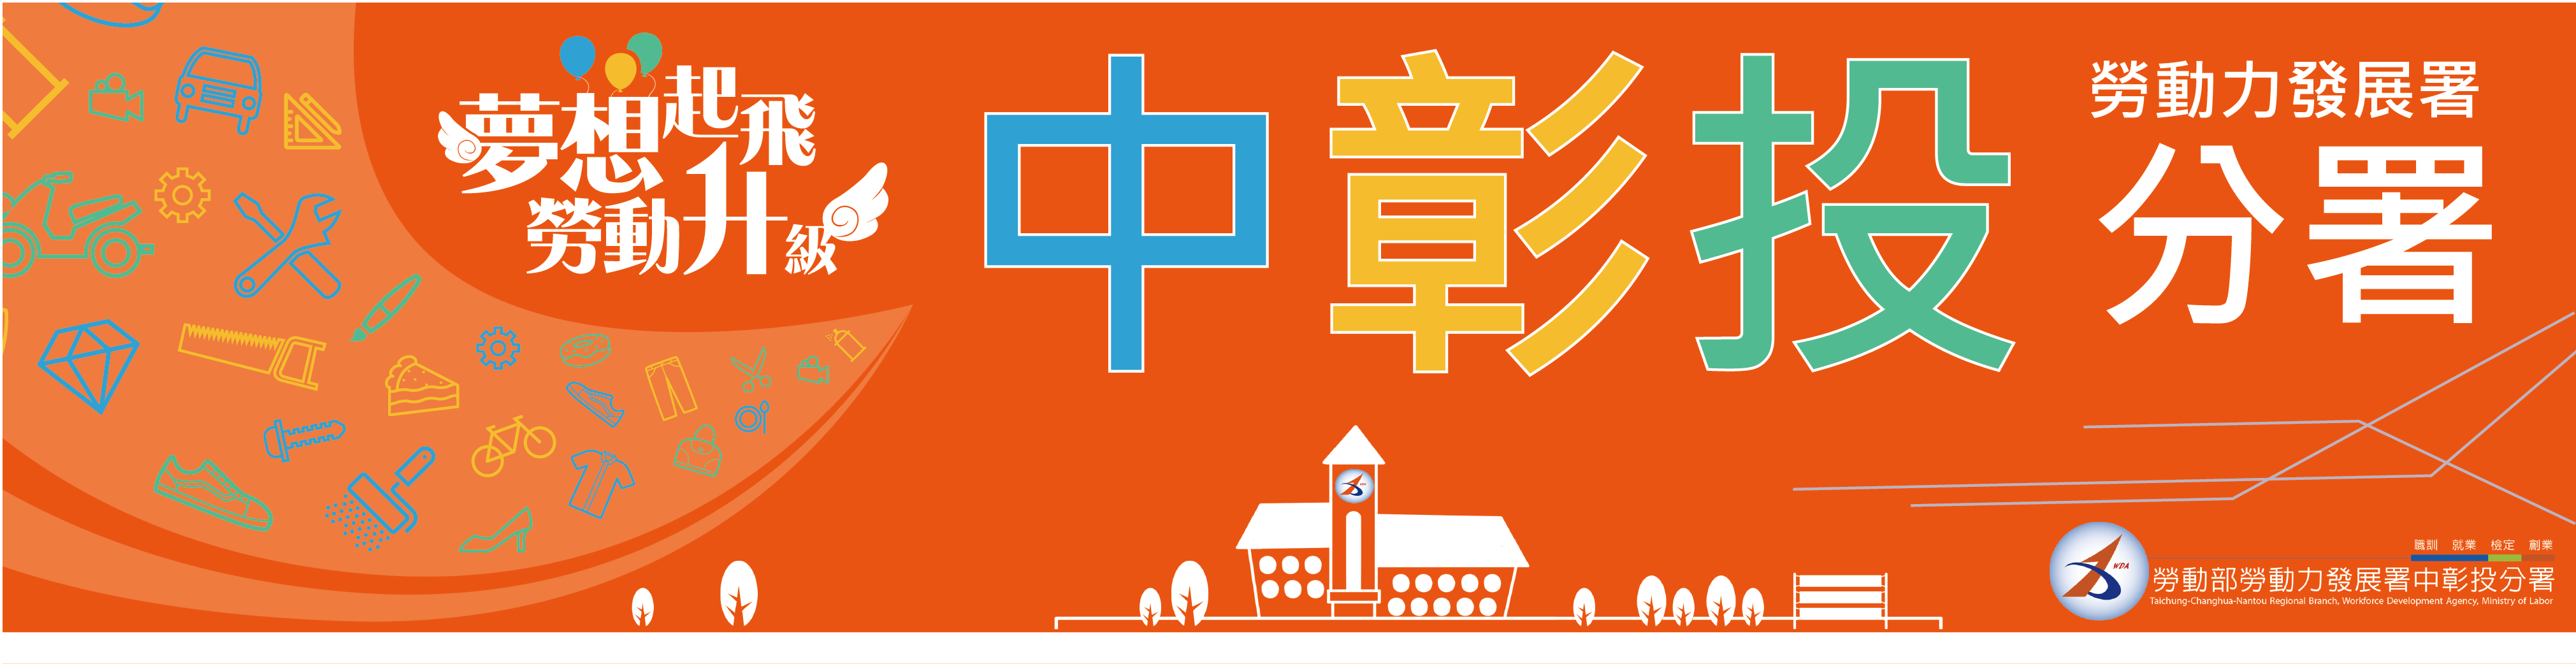 [另開新視窗]Taichung – Changhua - Nantou Regional Branch of Workforce Development Agency